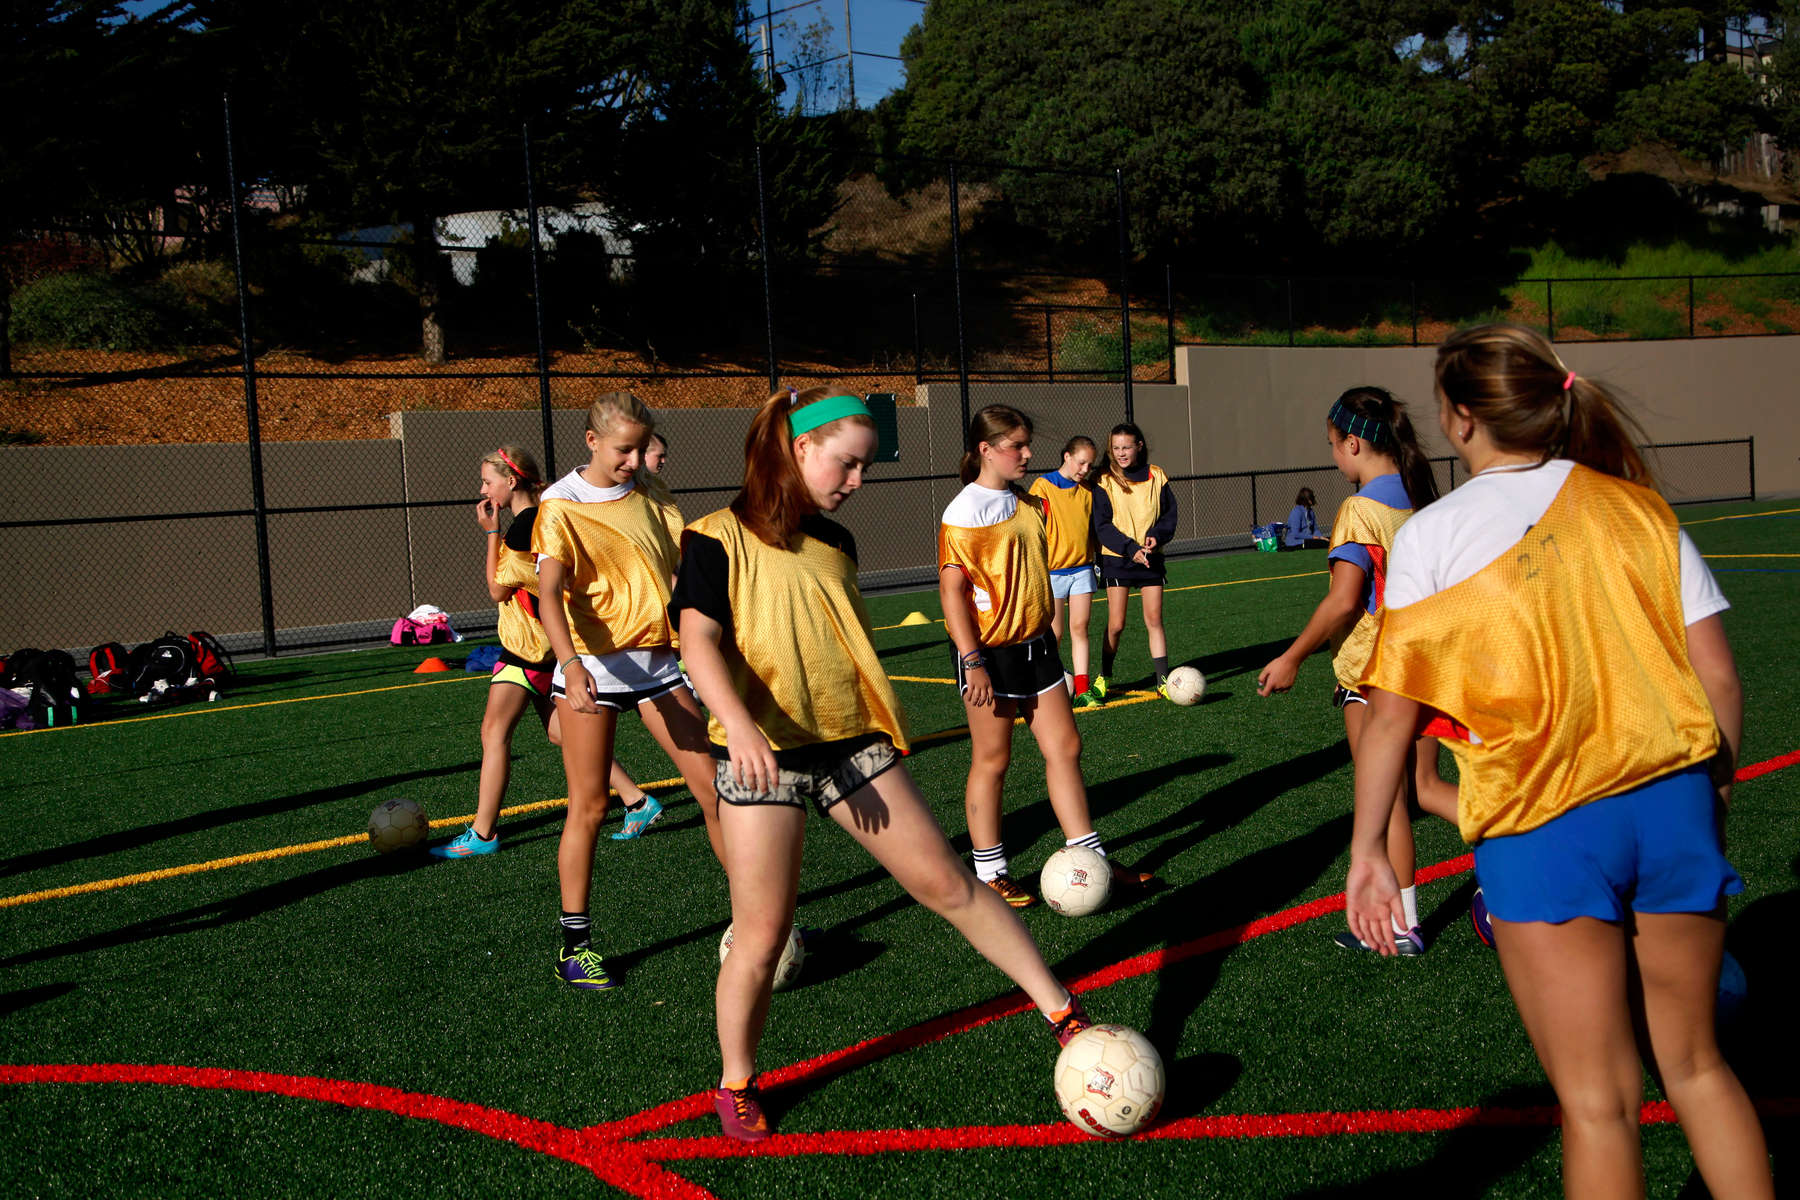 Soccer field, San Francisco, Calif., for the New York Times